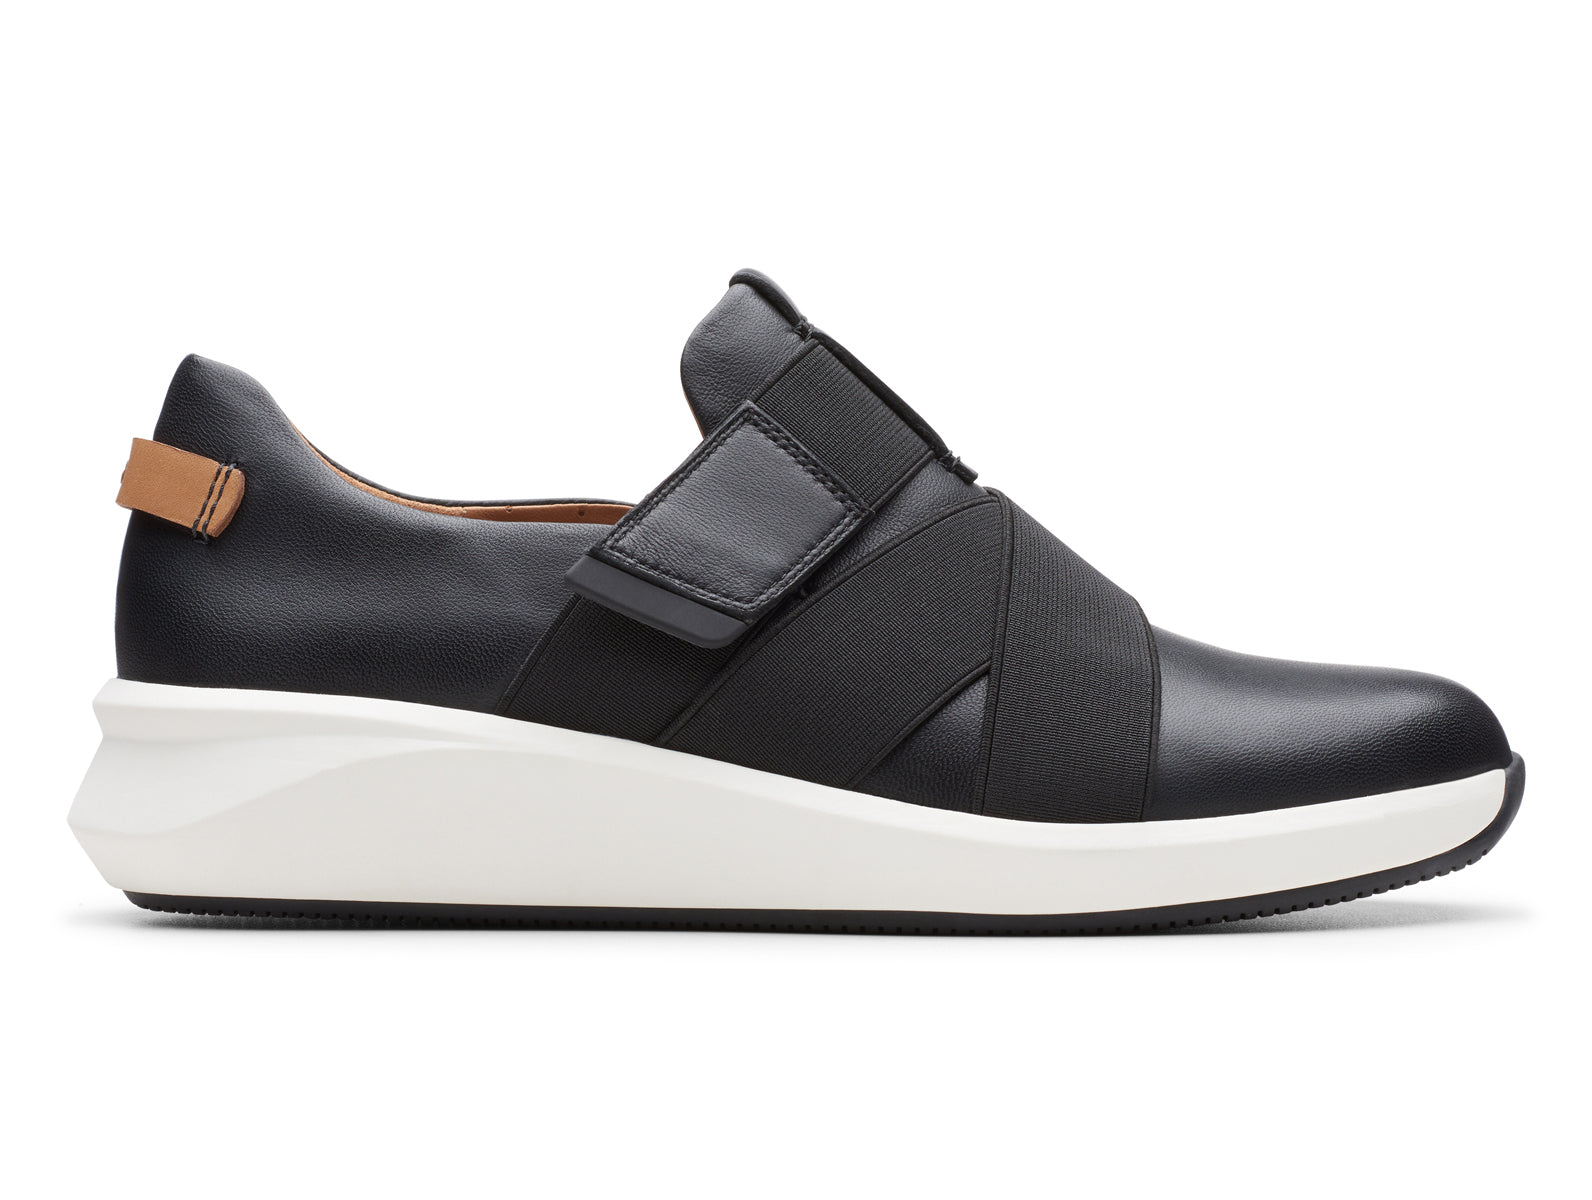 Clarks Un Rio Strap | Black | Ladies Shoes at Walsh Brothers